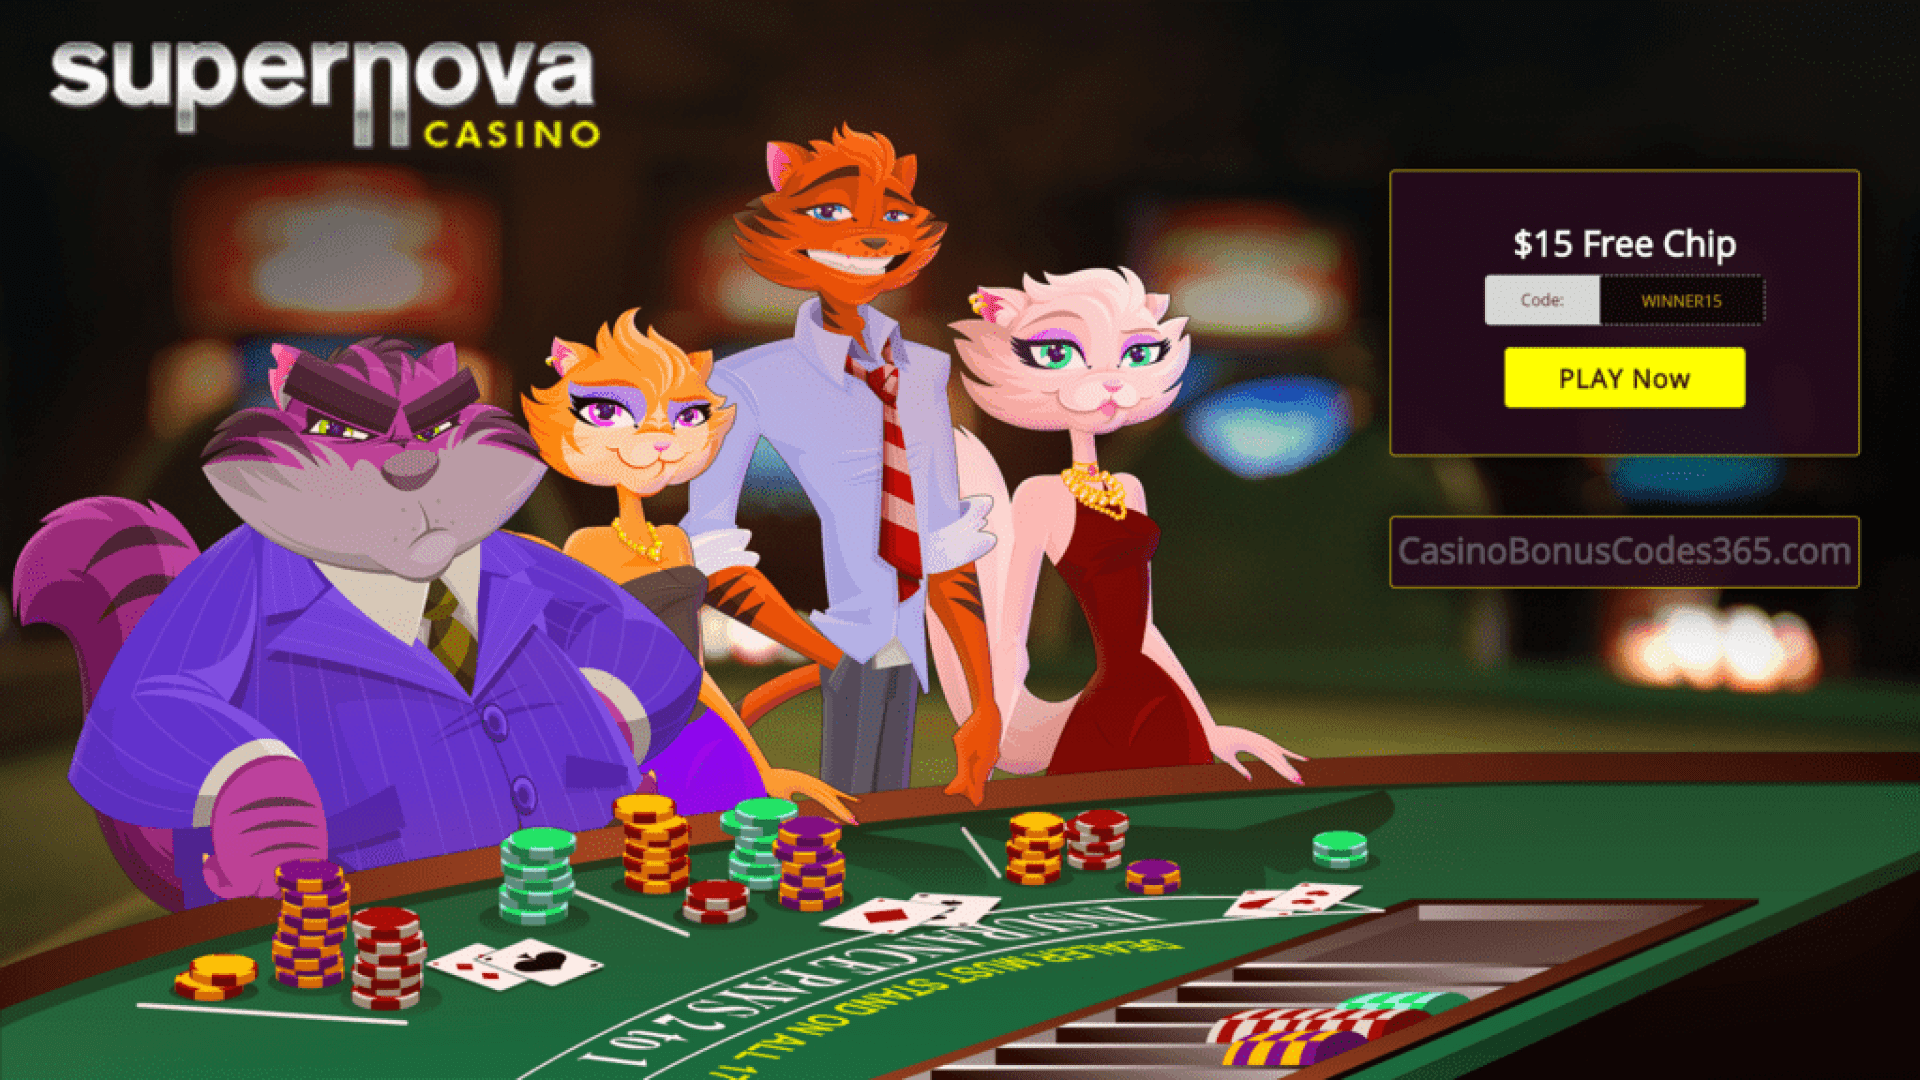 Supernova Casino $15 FREE Chip No Deposit Welcome Offer